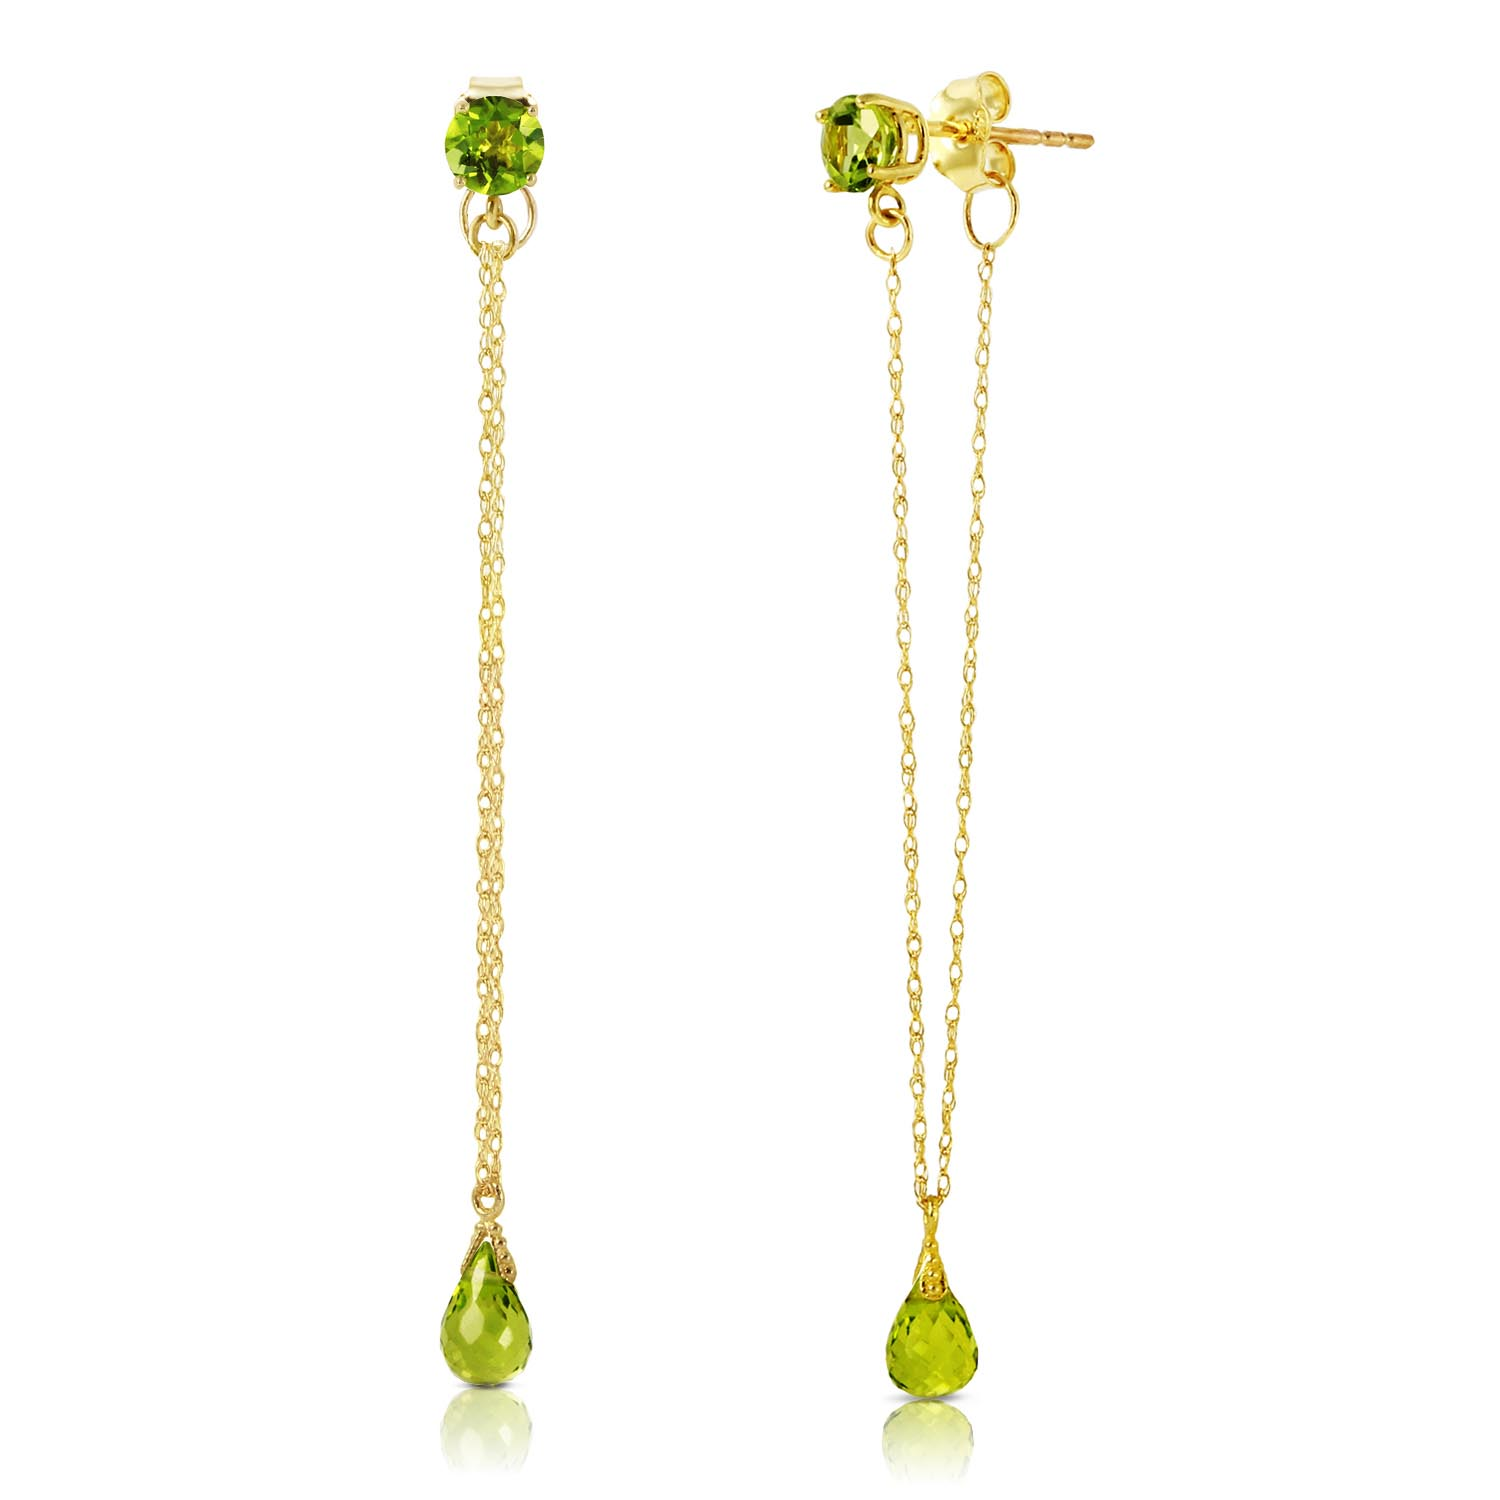 Peridot Monte Carlo Drop Earrings 3.15ctw in 9ct Gold